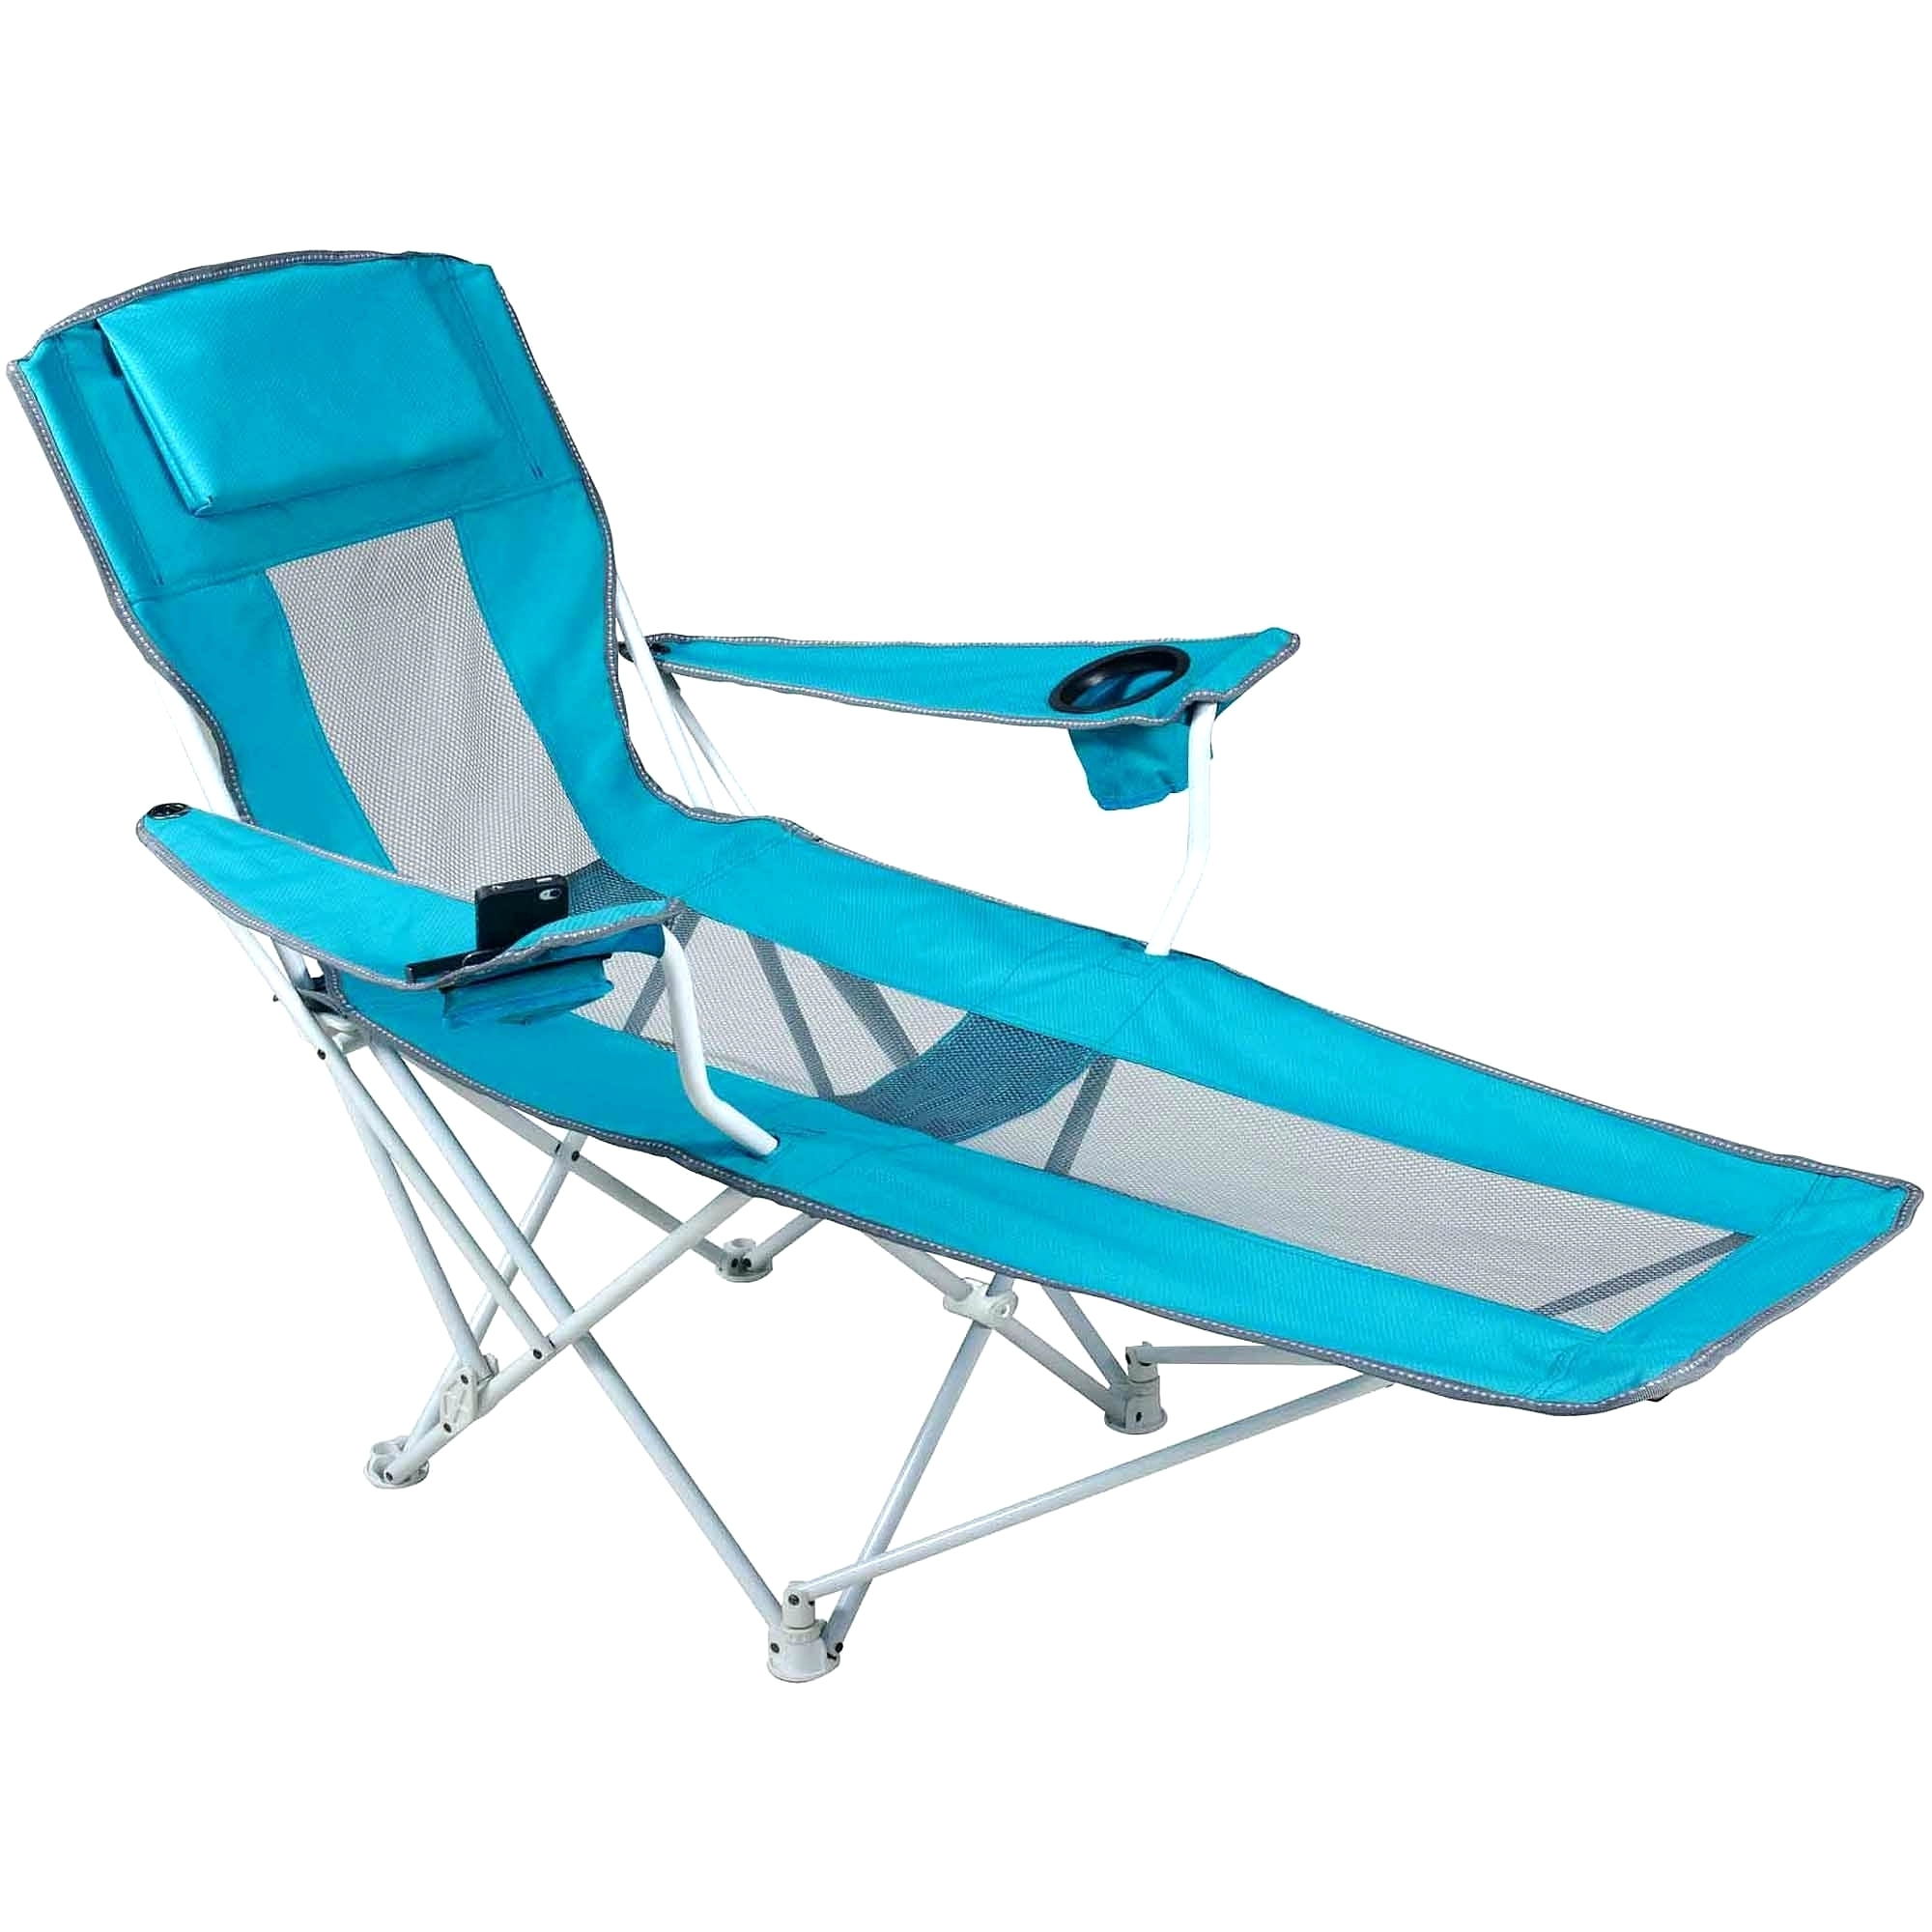 Folding Jelly Chaise Lounge Chair • Lounge Chairs Ideas Intended For Newest Jelly Chaise Lounge Chairs (View 3 of 15)